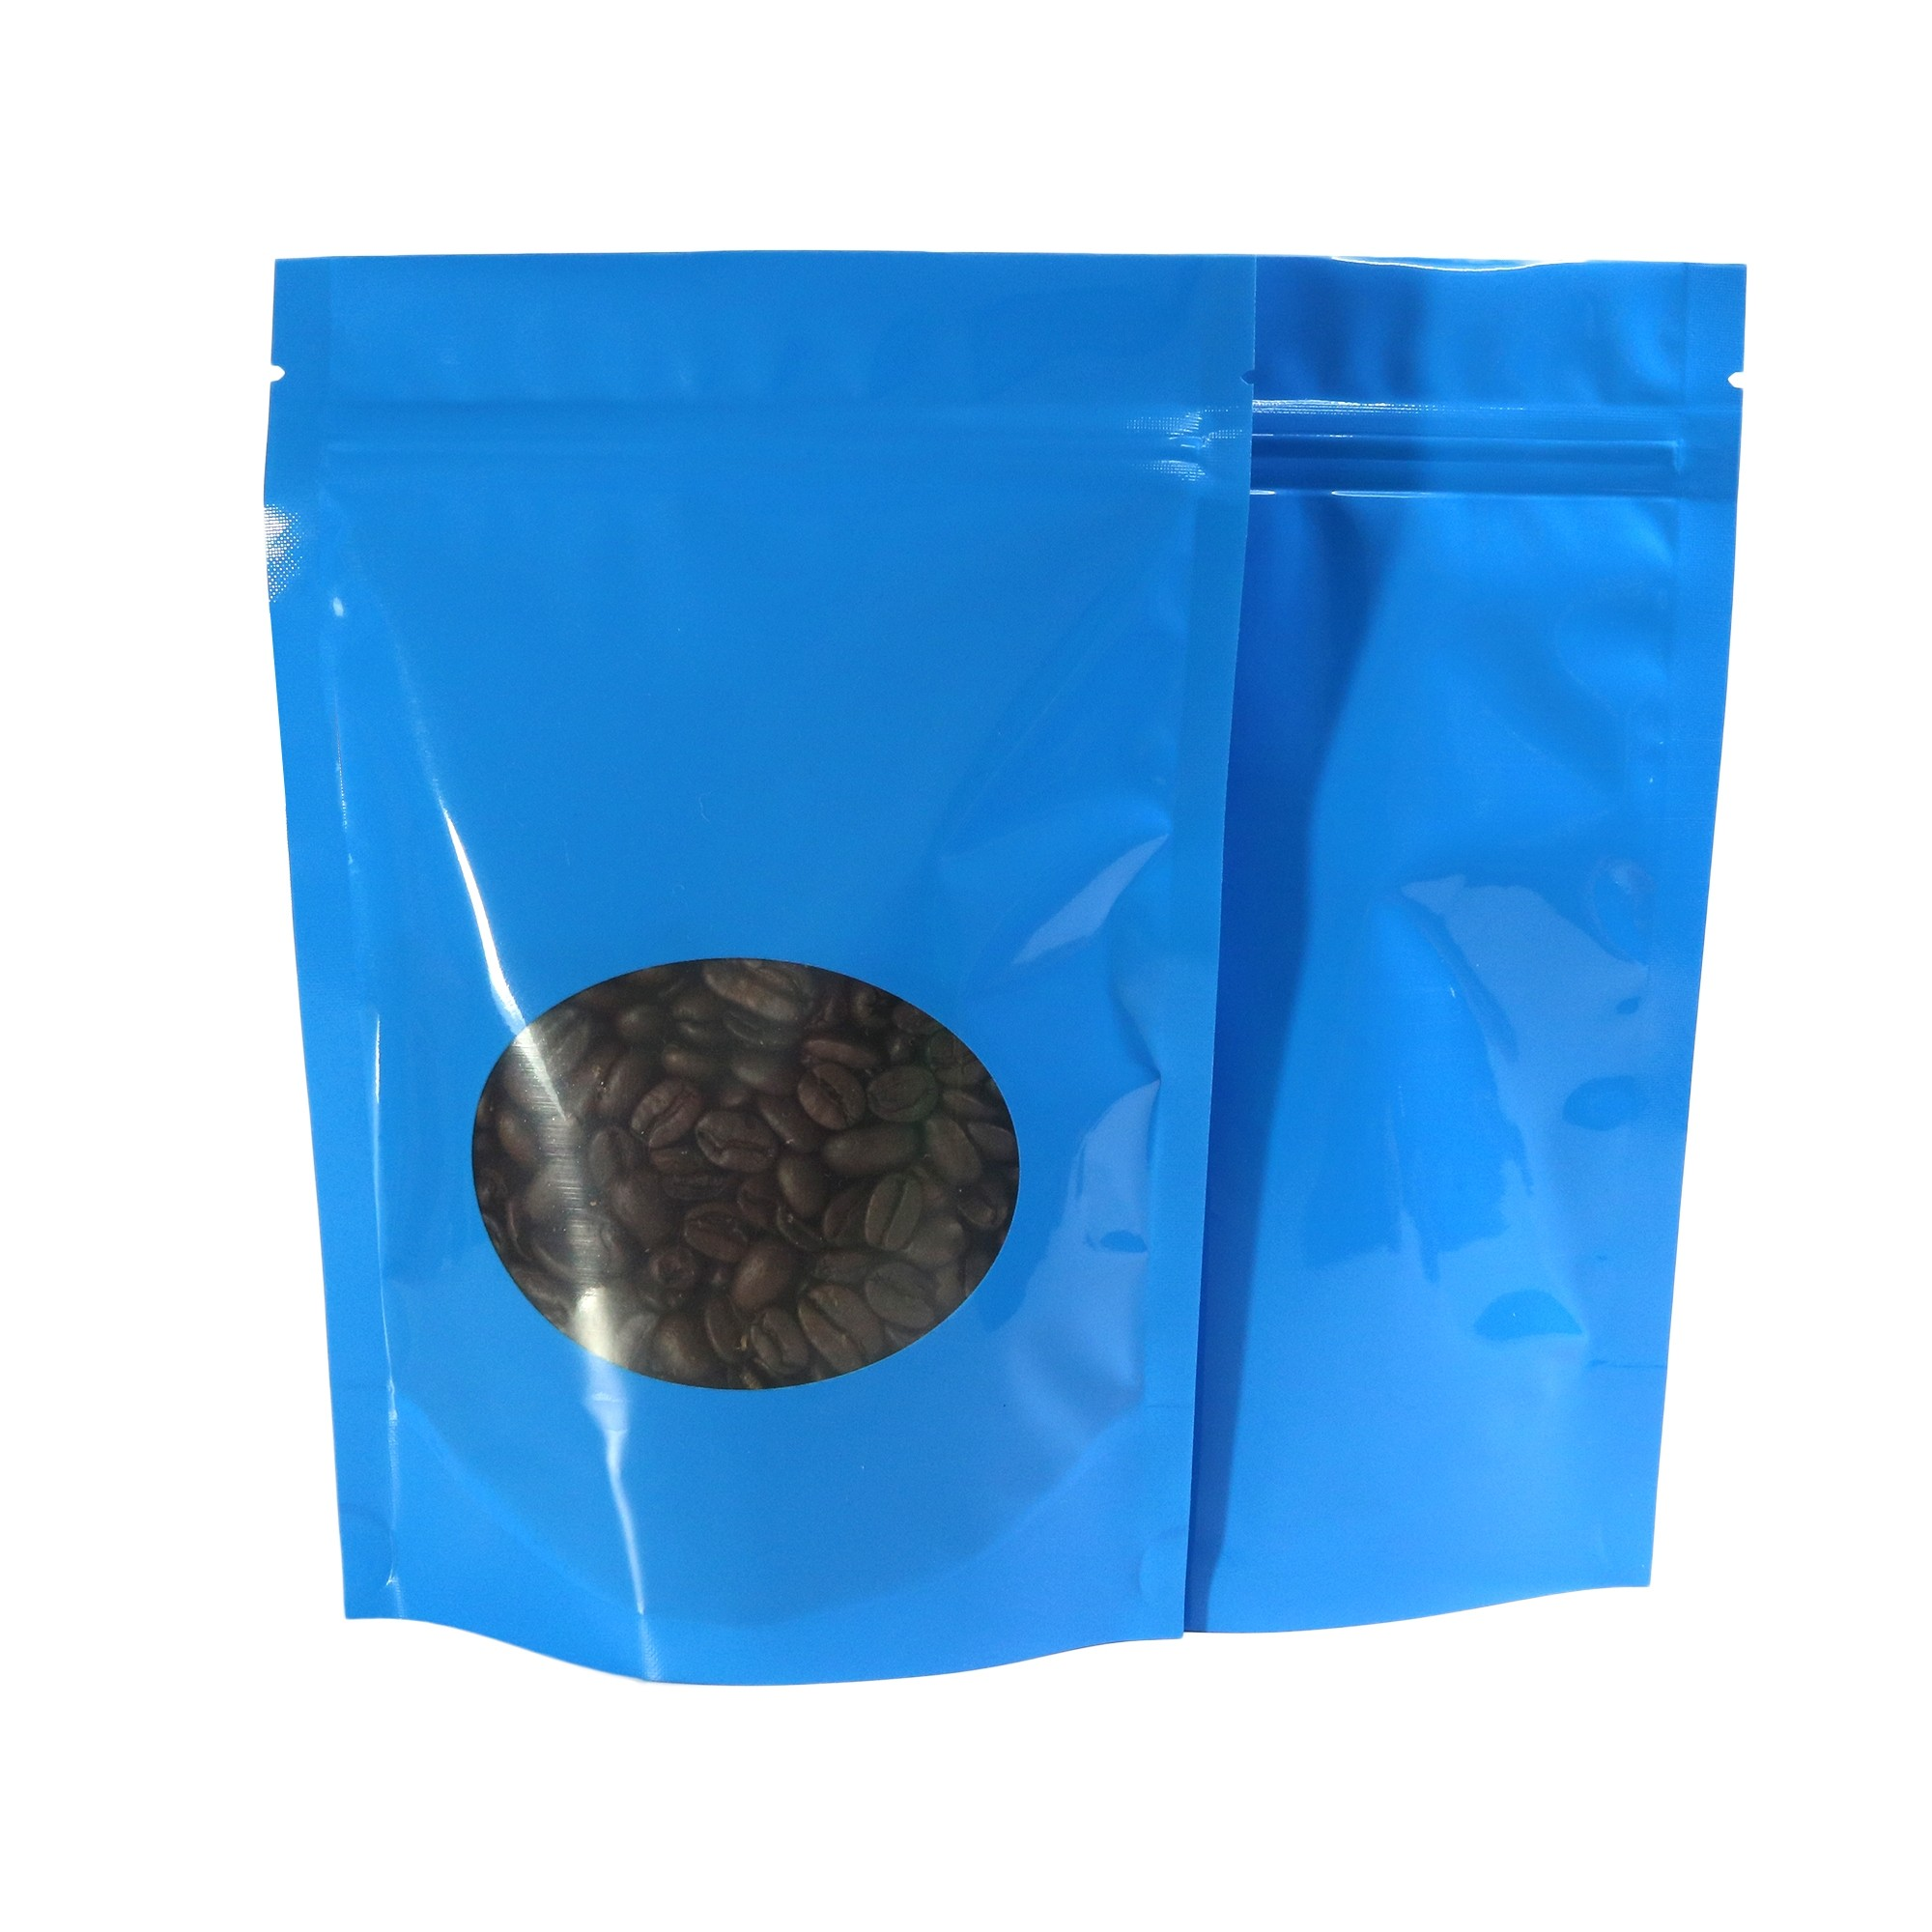 Glossy Blue Clear Round Window Metallic Foil Standup Ziplock Bags 14 cm x 20 cm [5.5 inches x 7.9 inches] (500 Bags/Lot)